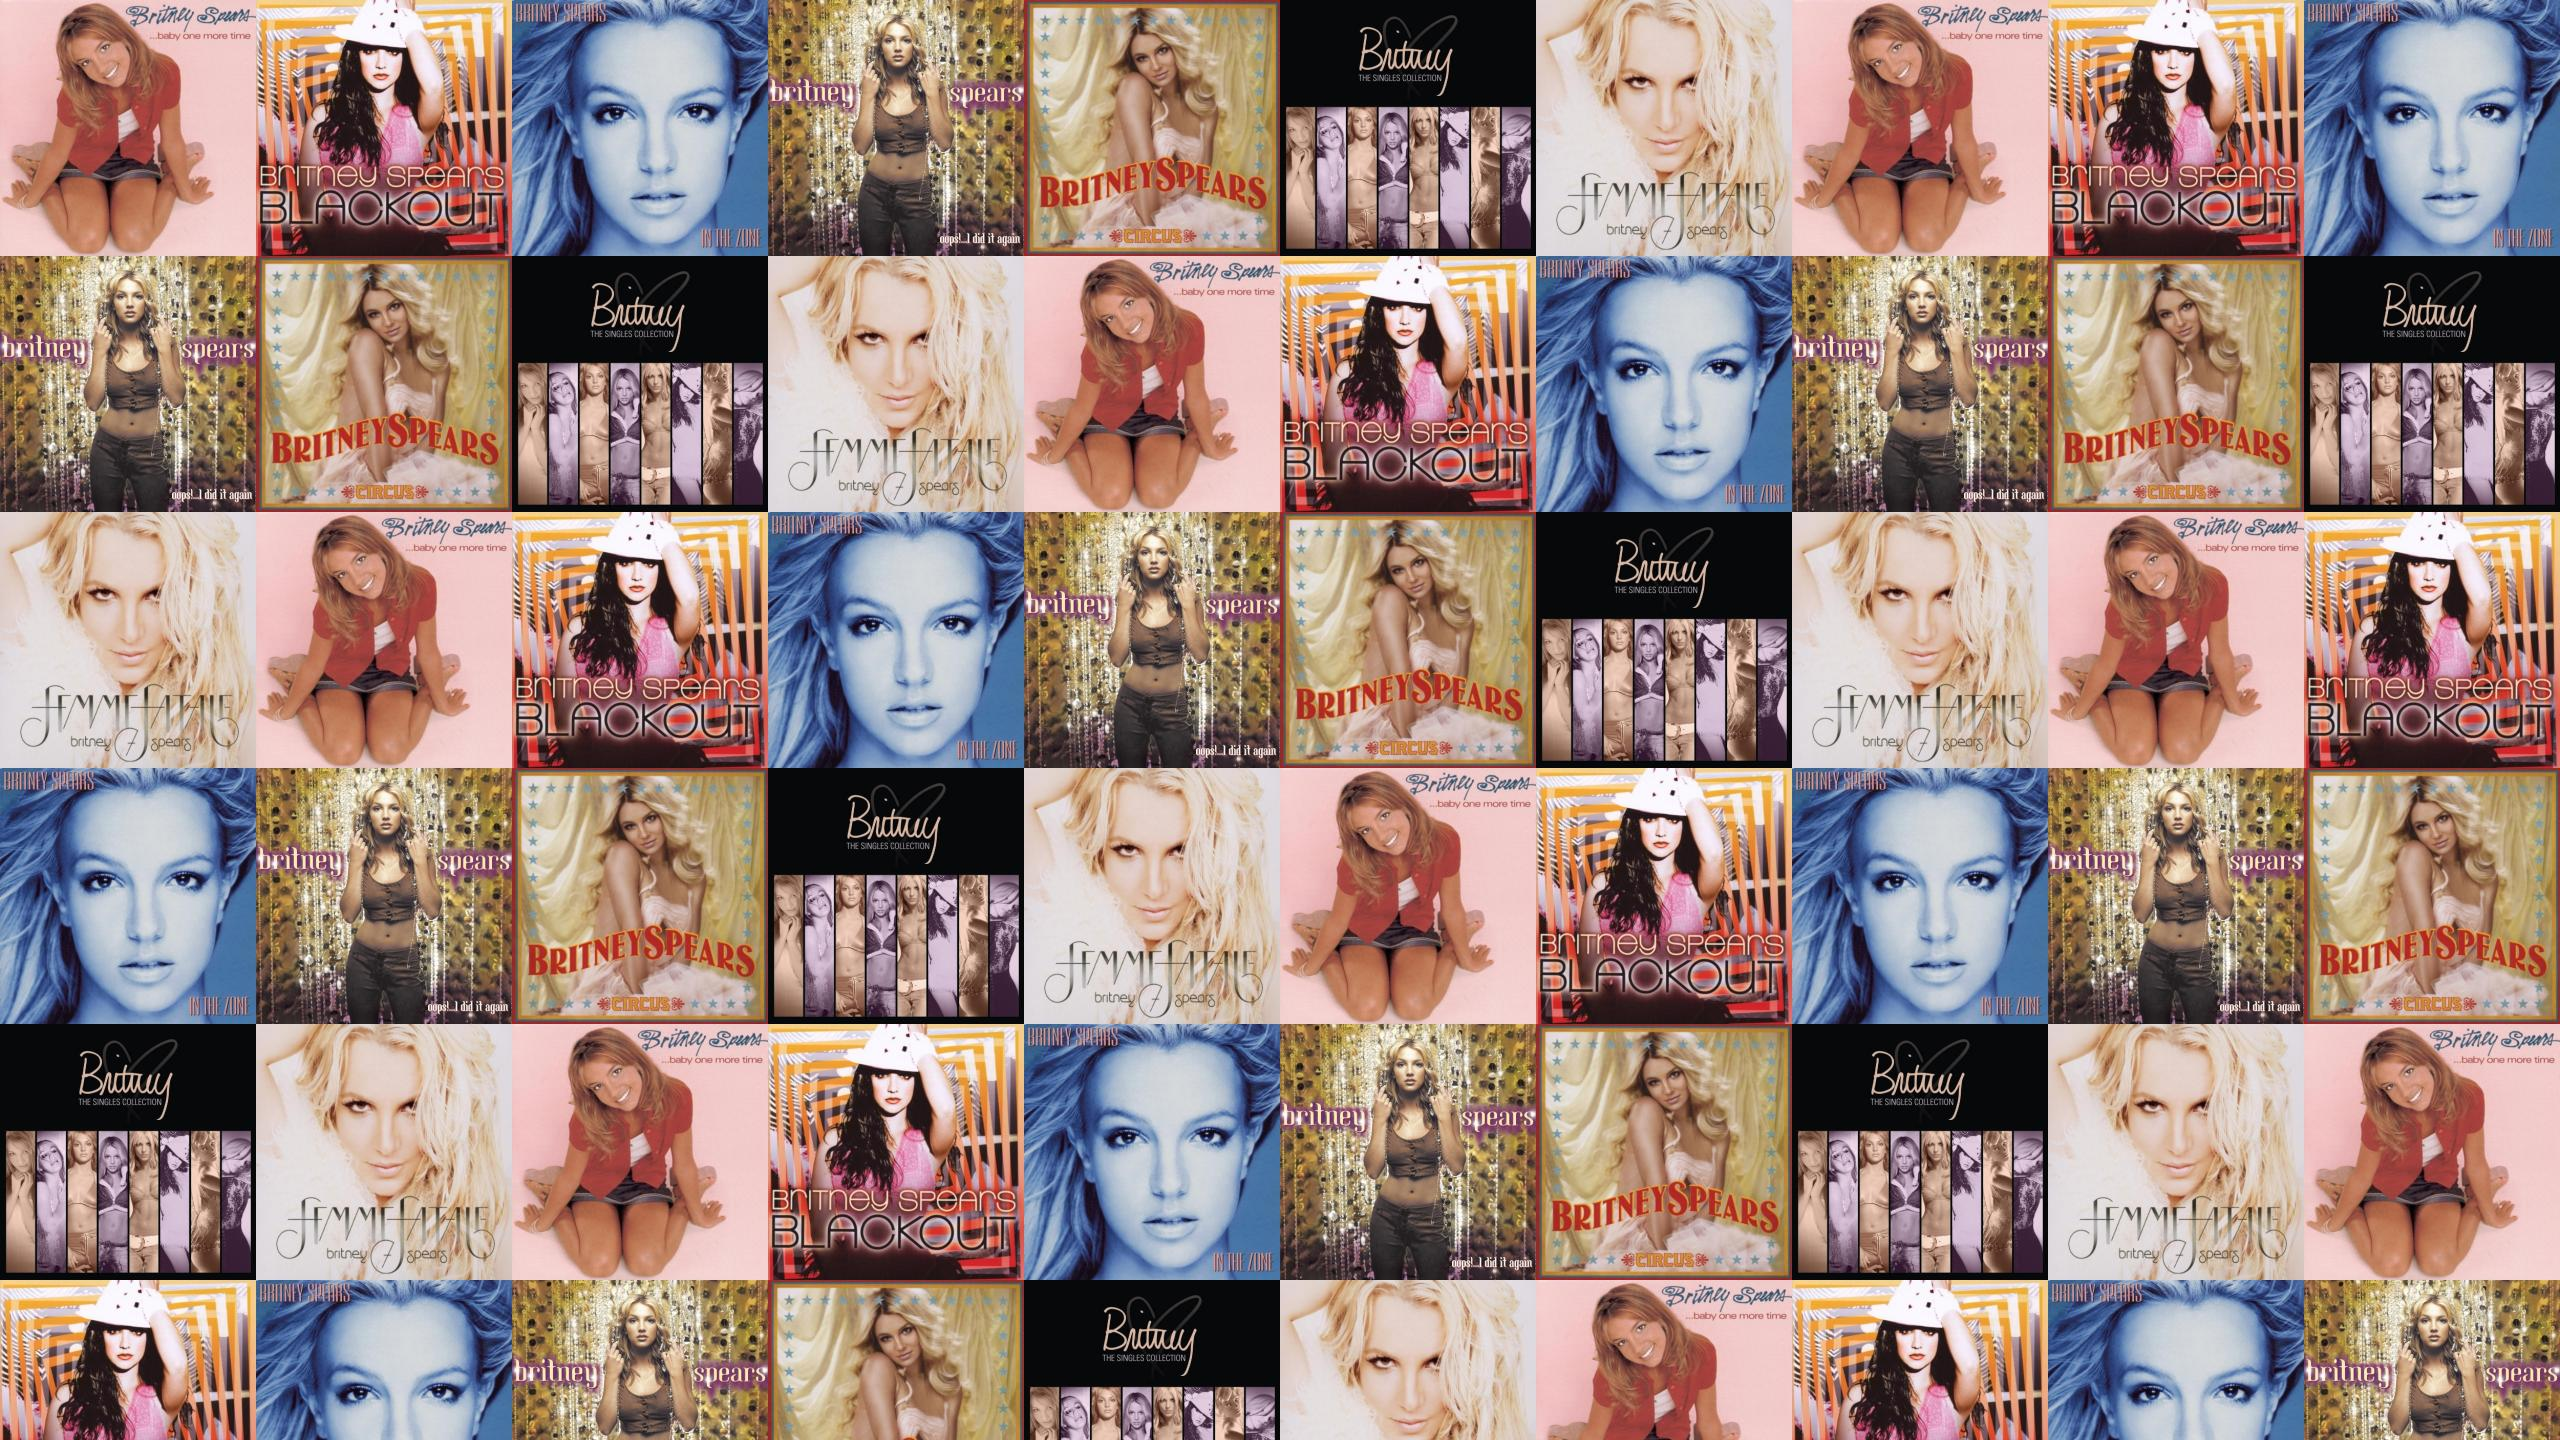 britney spears baby one more time download